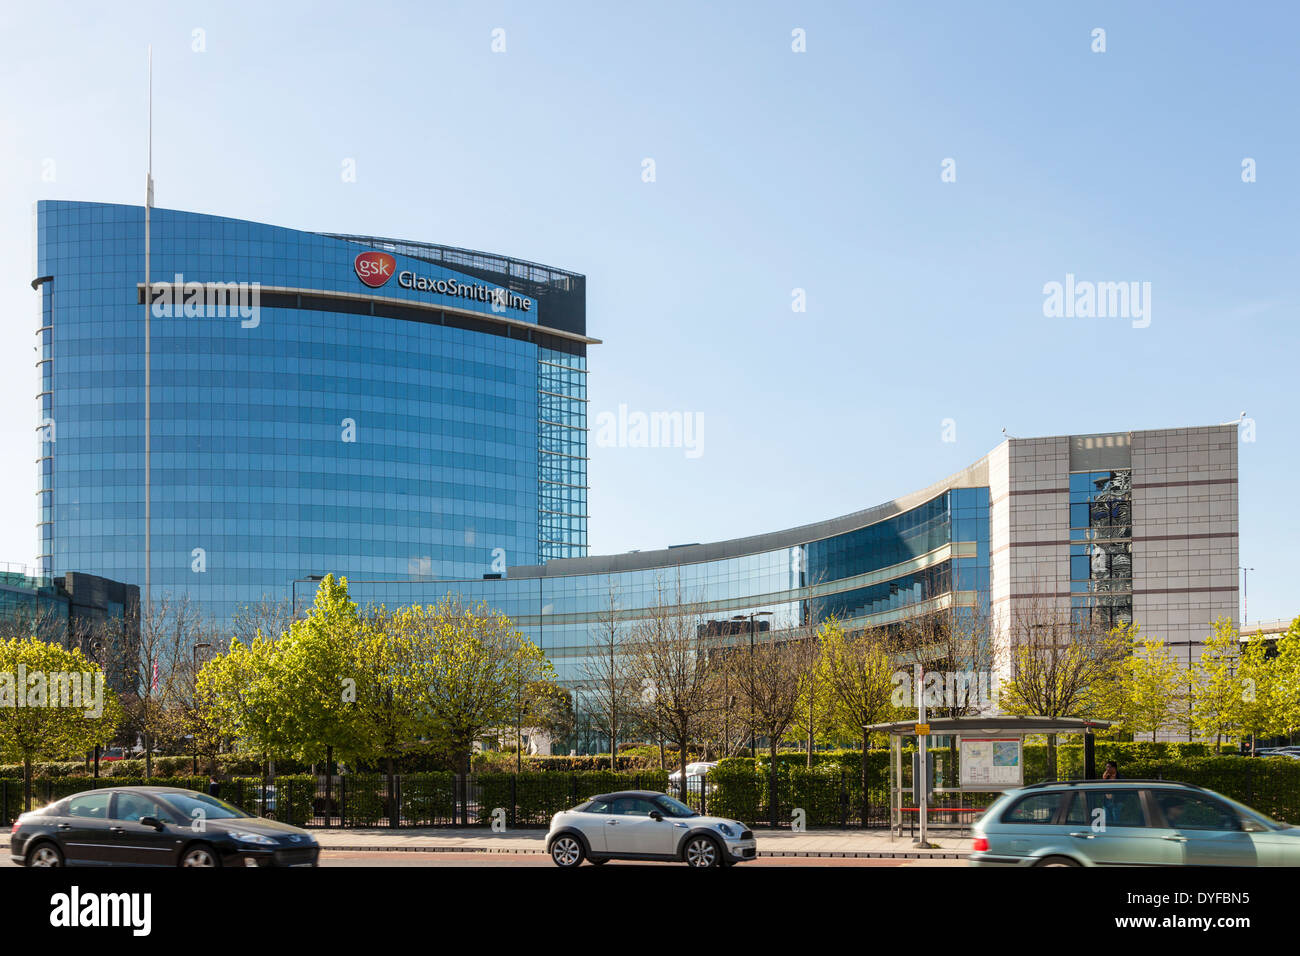 GSK House the GlaxoSmithKline plc global company